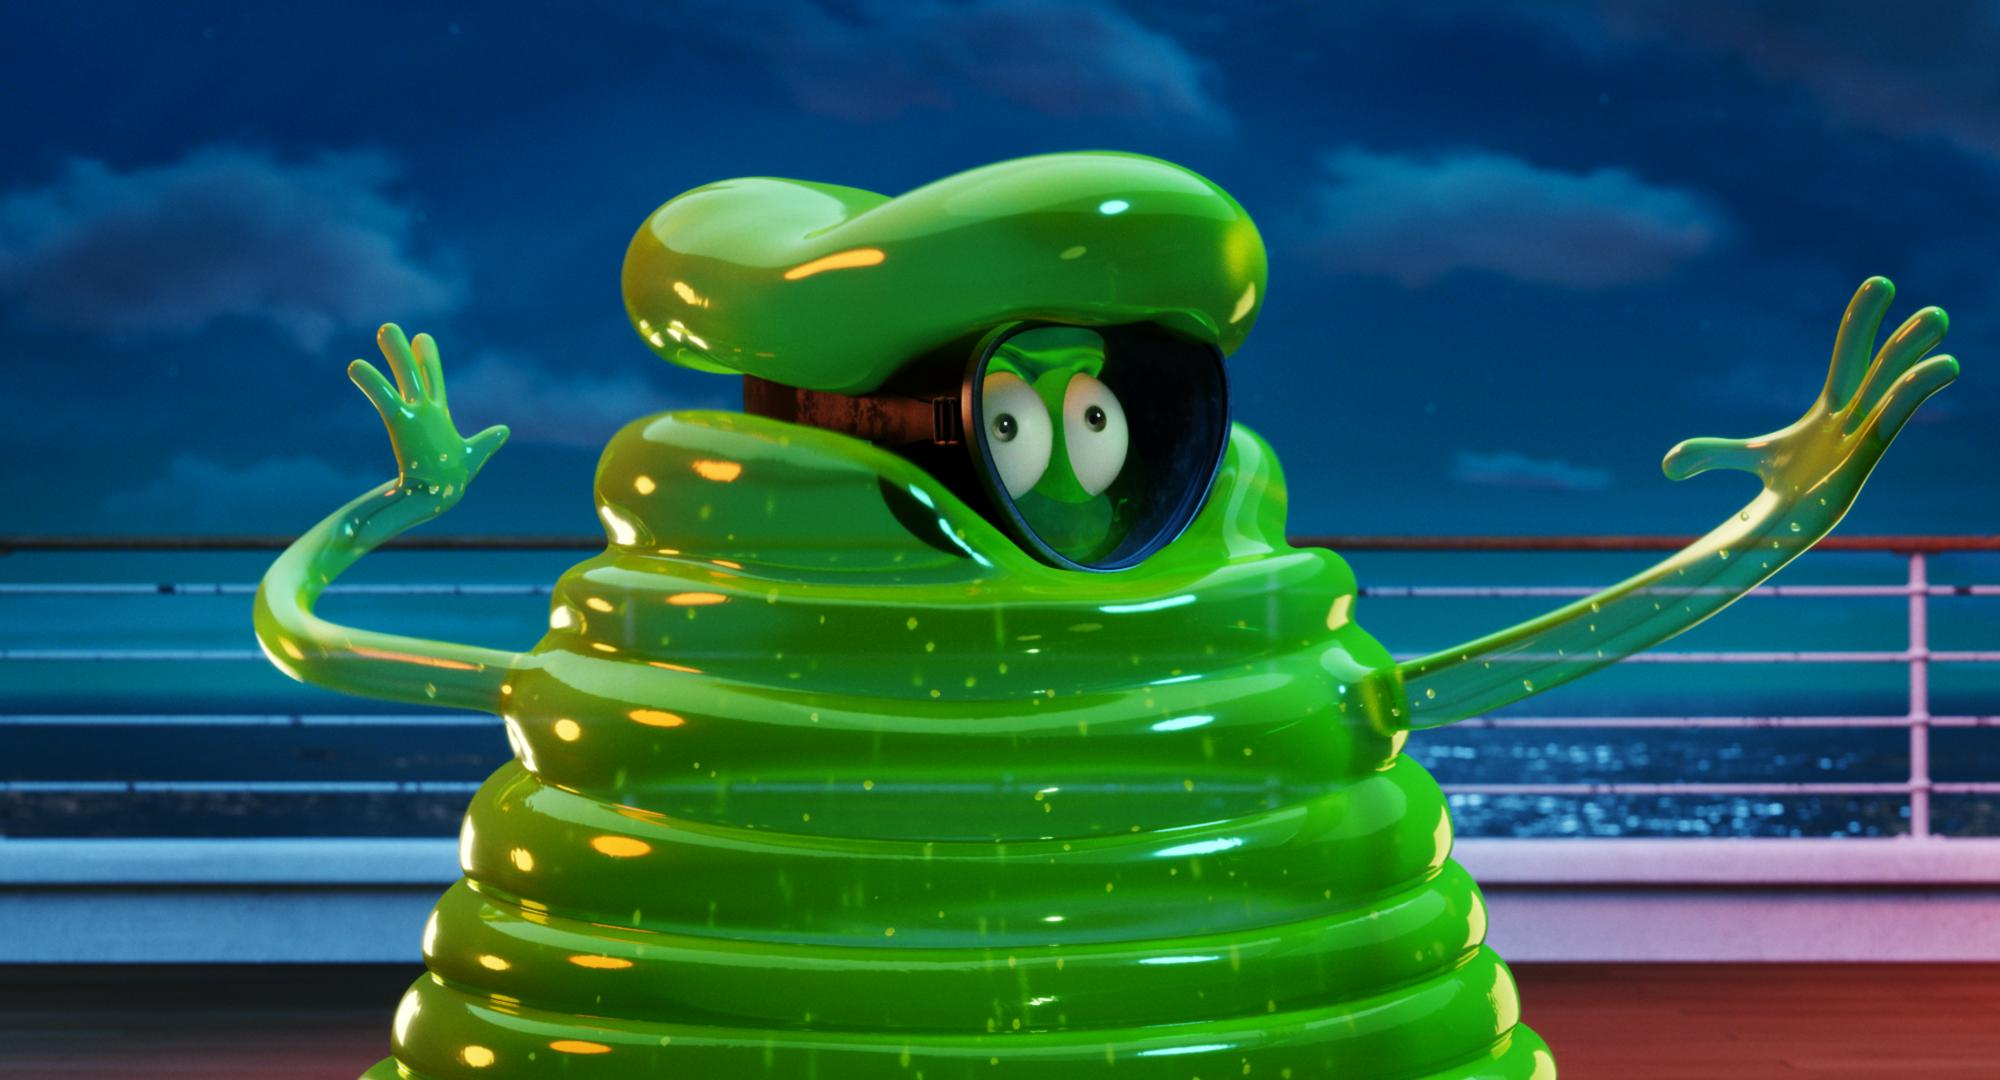 Review: 'Hotel Transylvania 3: Summer Vacation' will make your kids